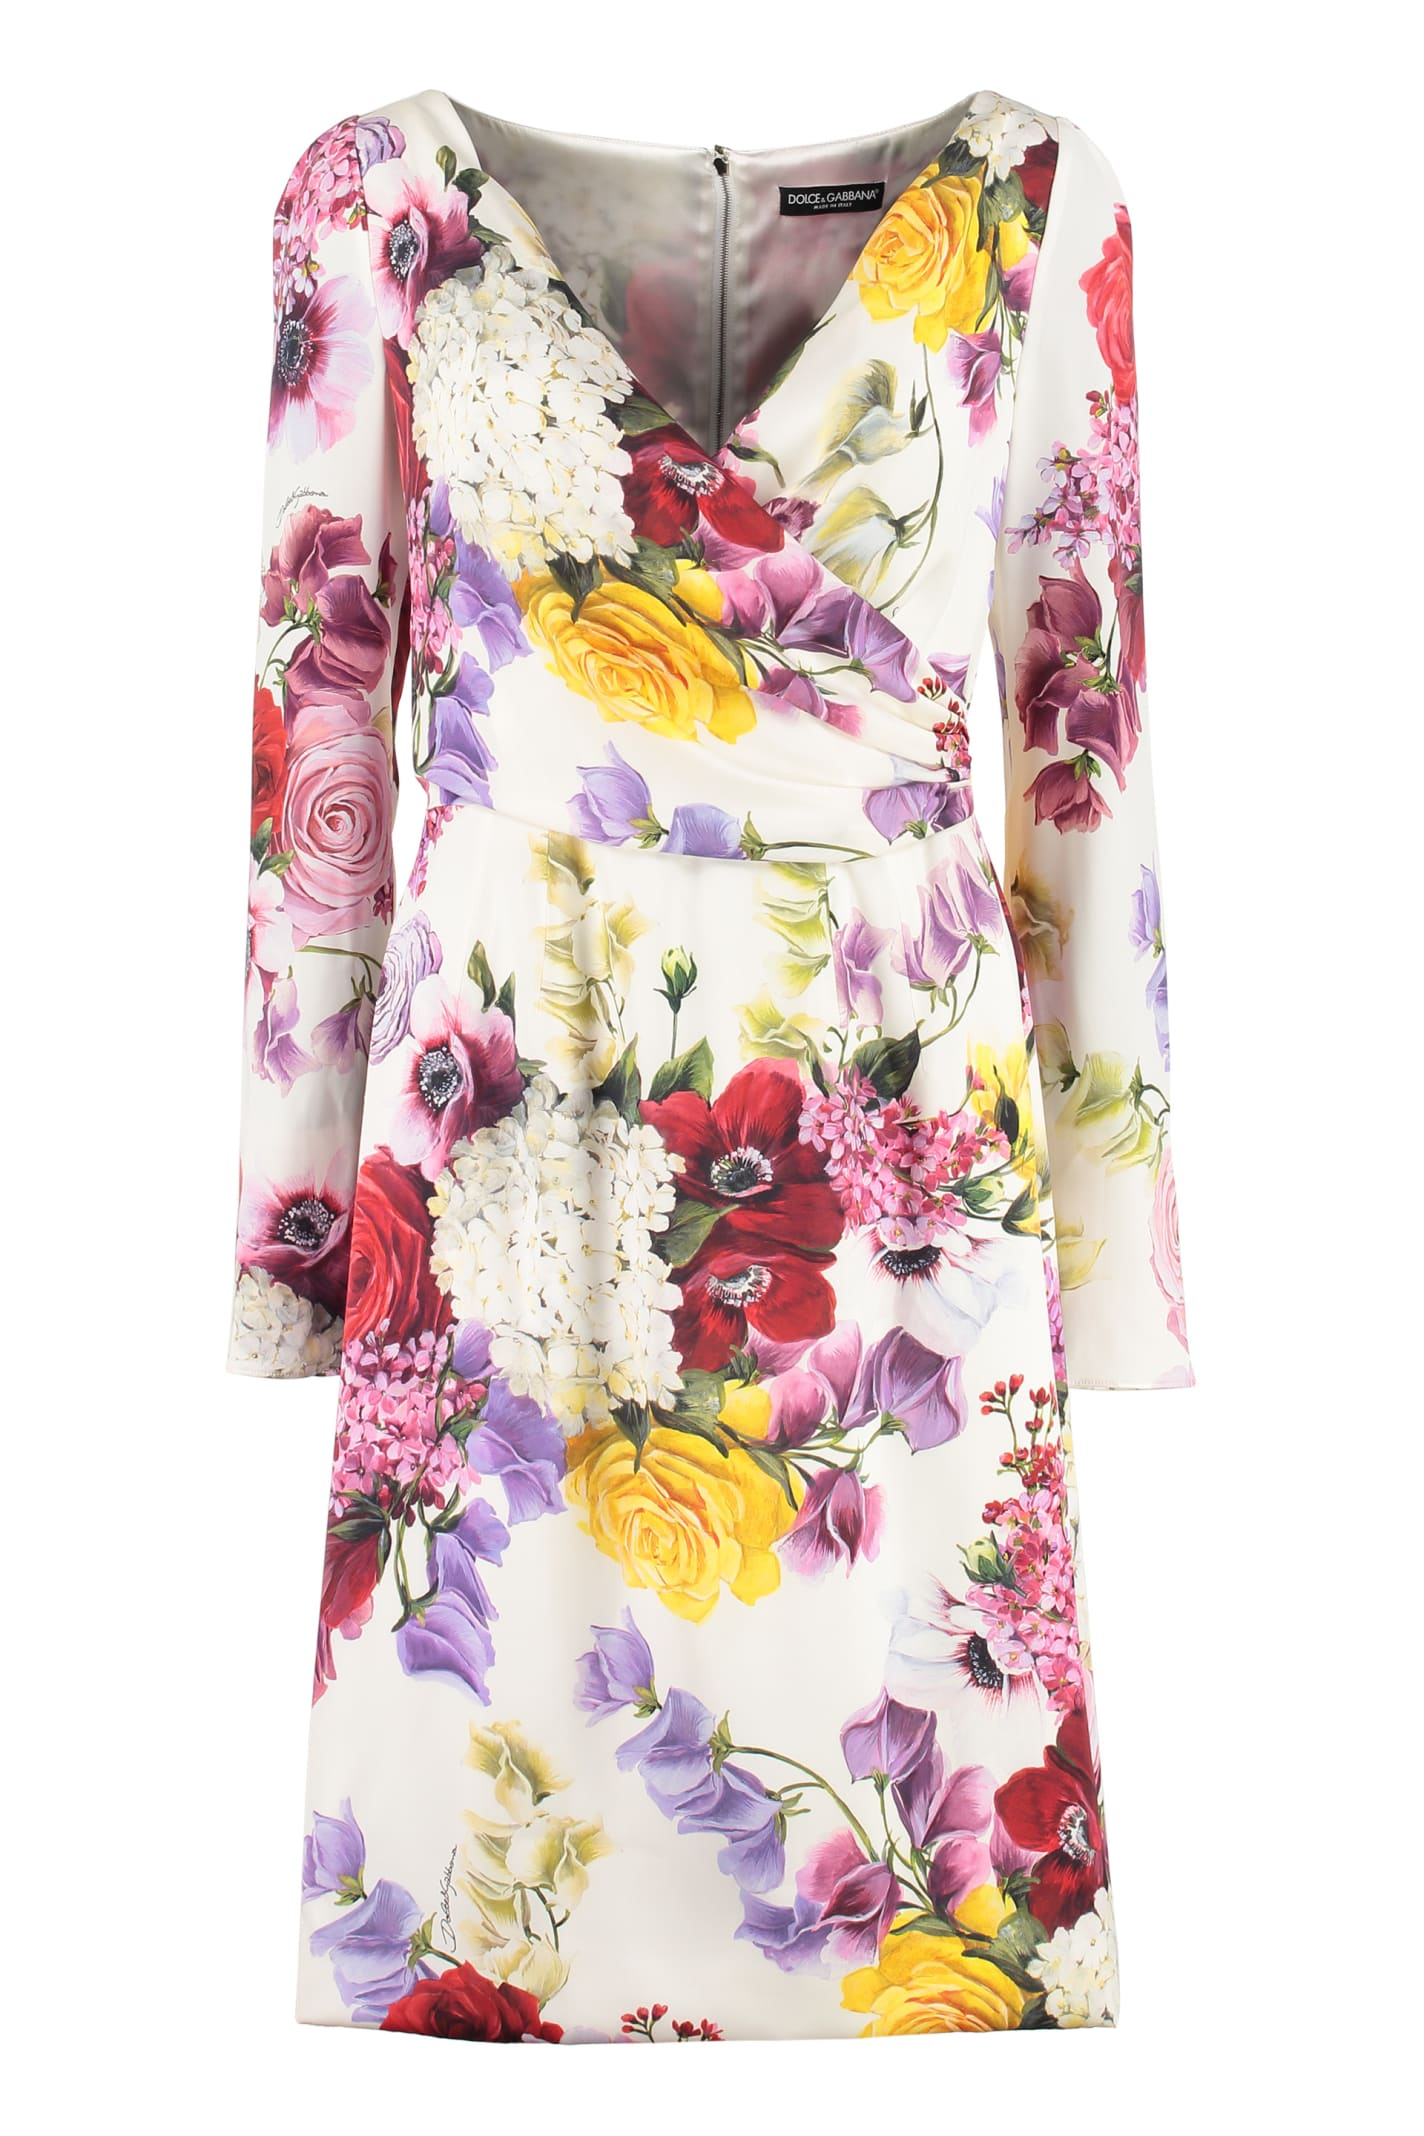 Dolce & Gabbana Floral Print Silk Sheath-dress